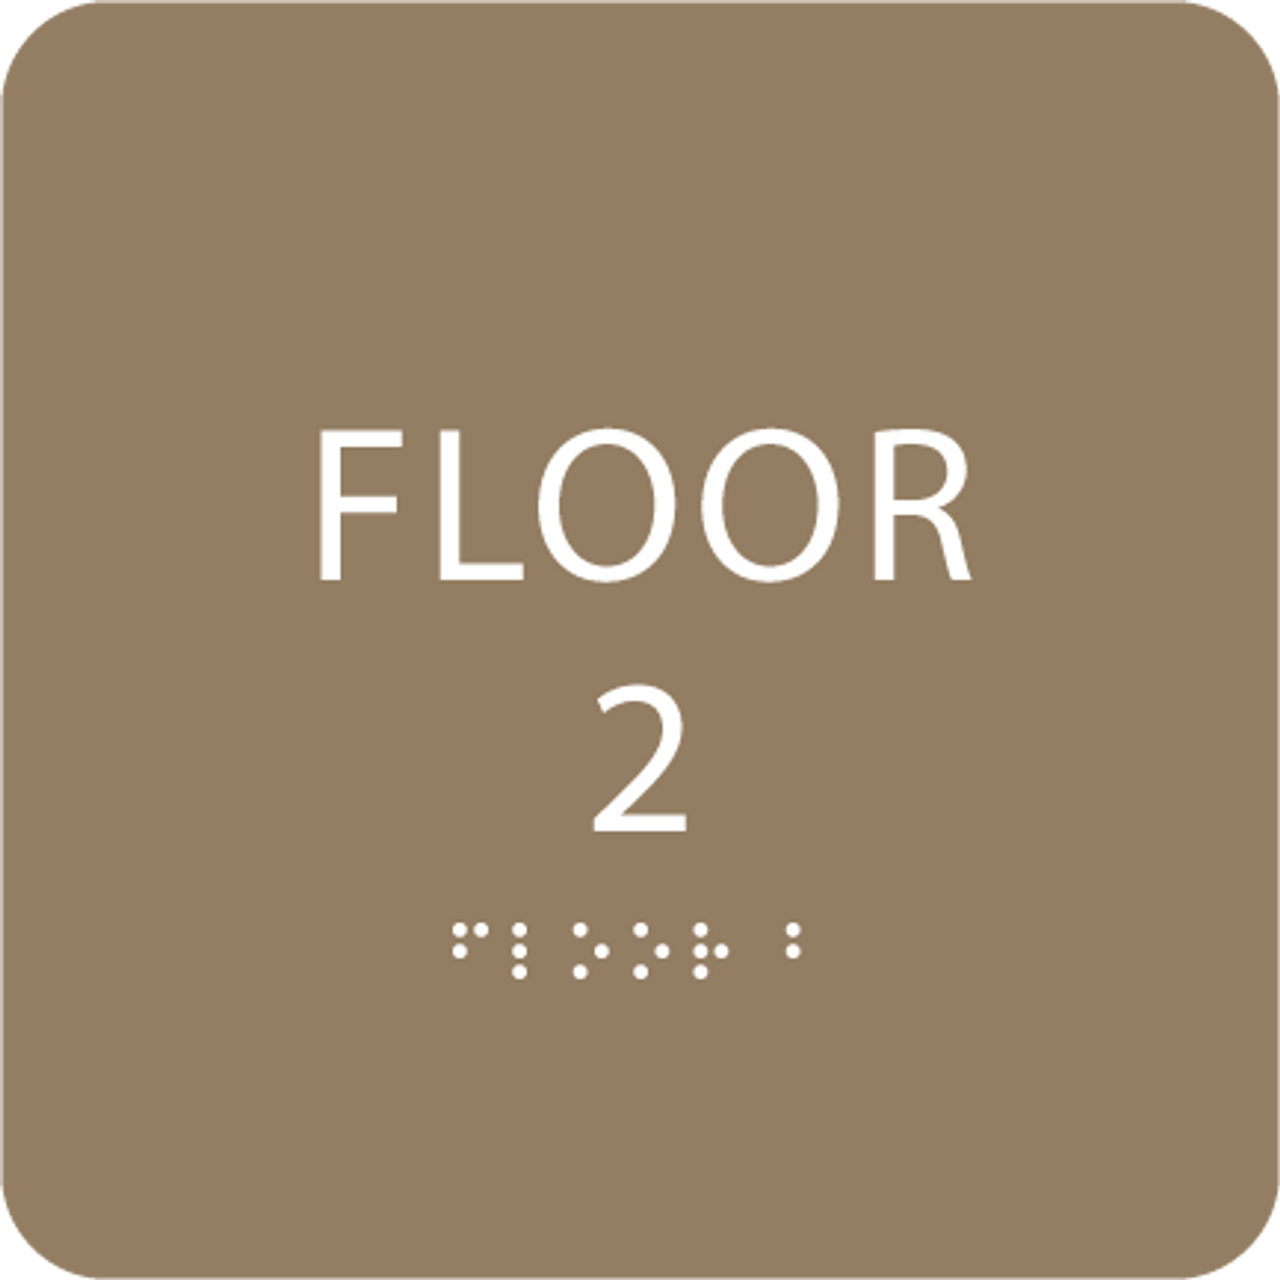 Brown Floor 2 Identification Sign